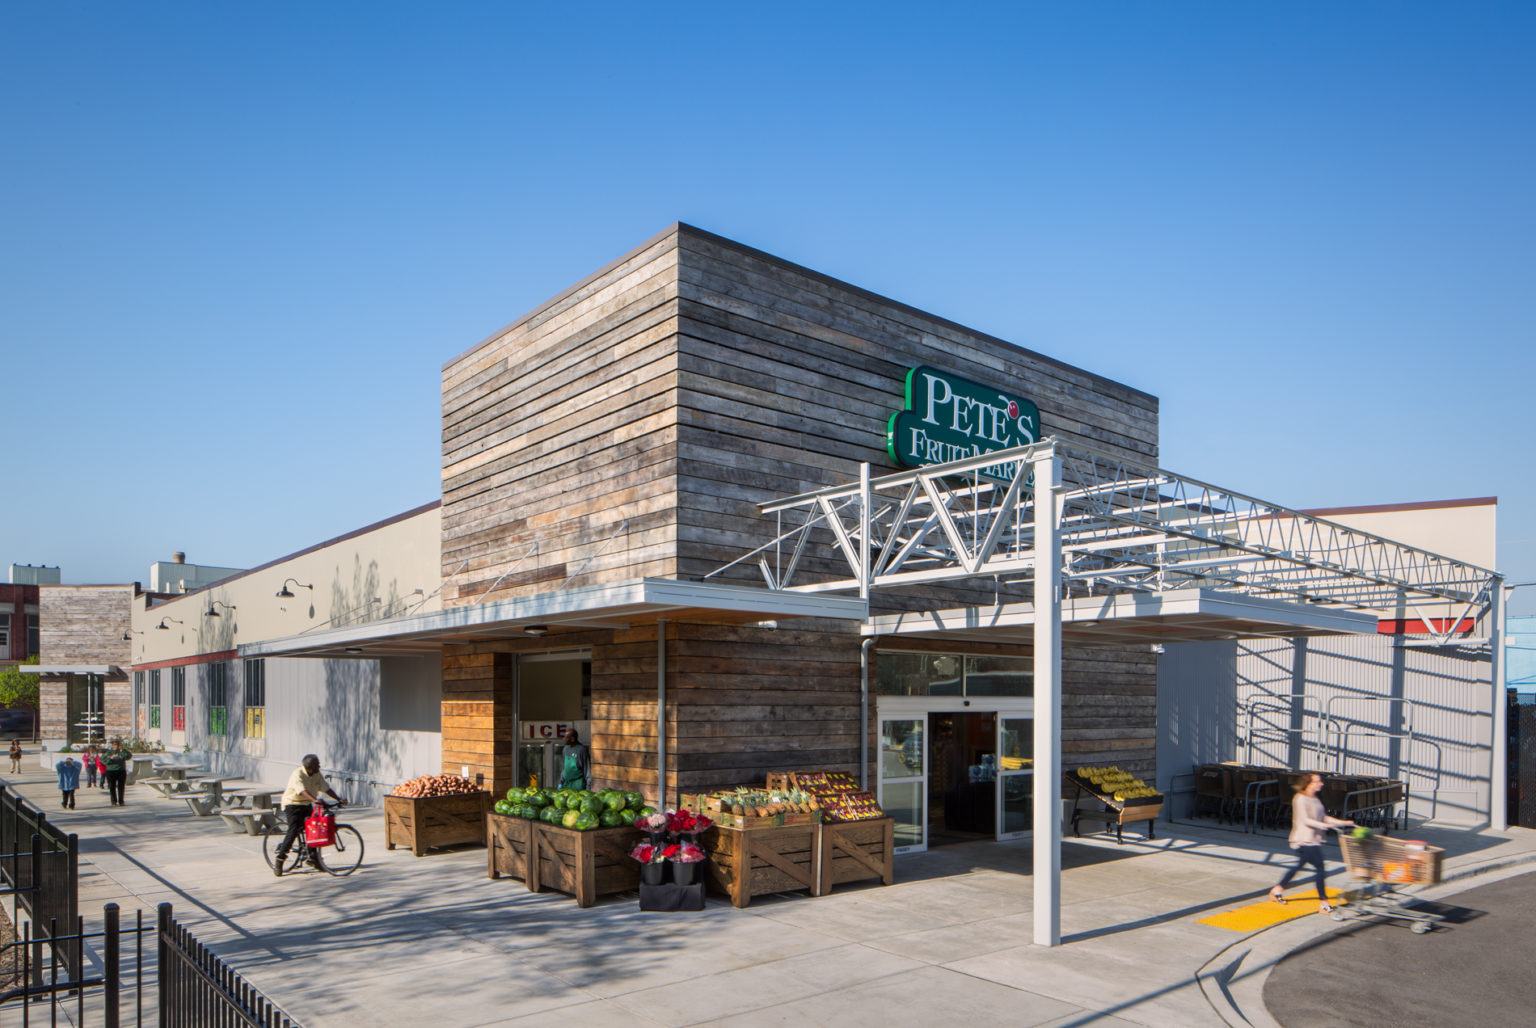 Petes_Fruit_Market_Enberg_Anderson_Ryan_Hainey_Photography_Web_002